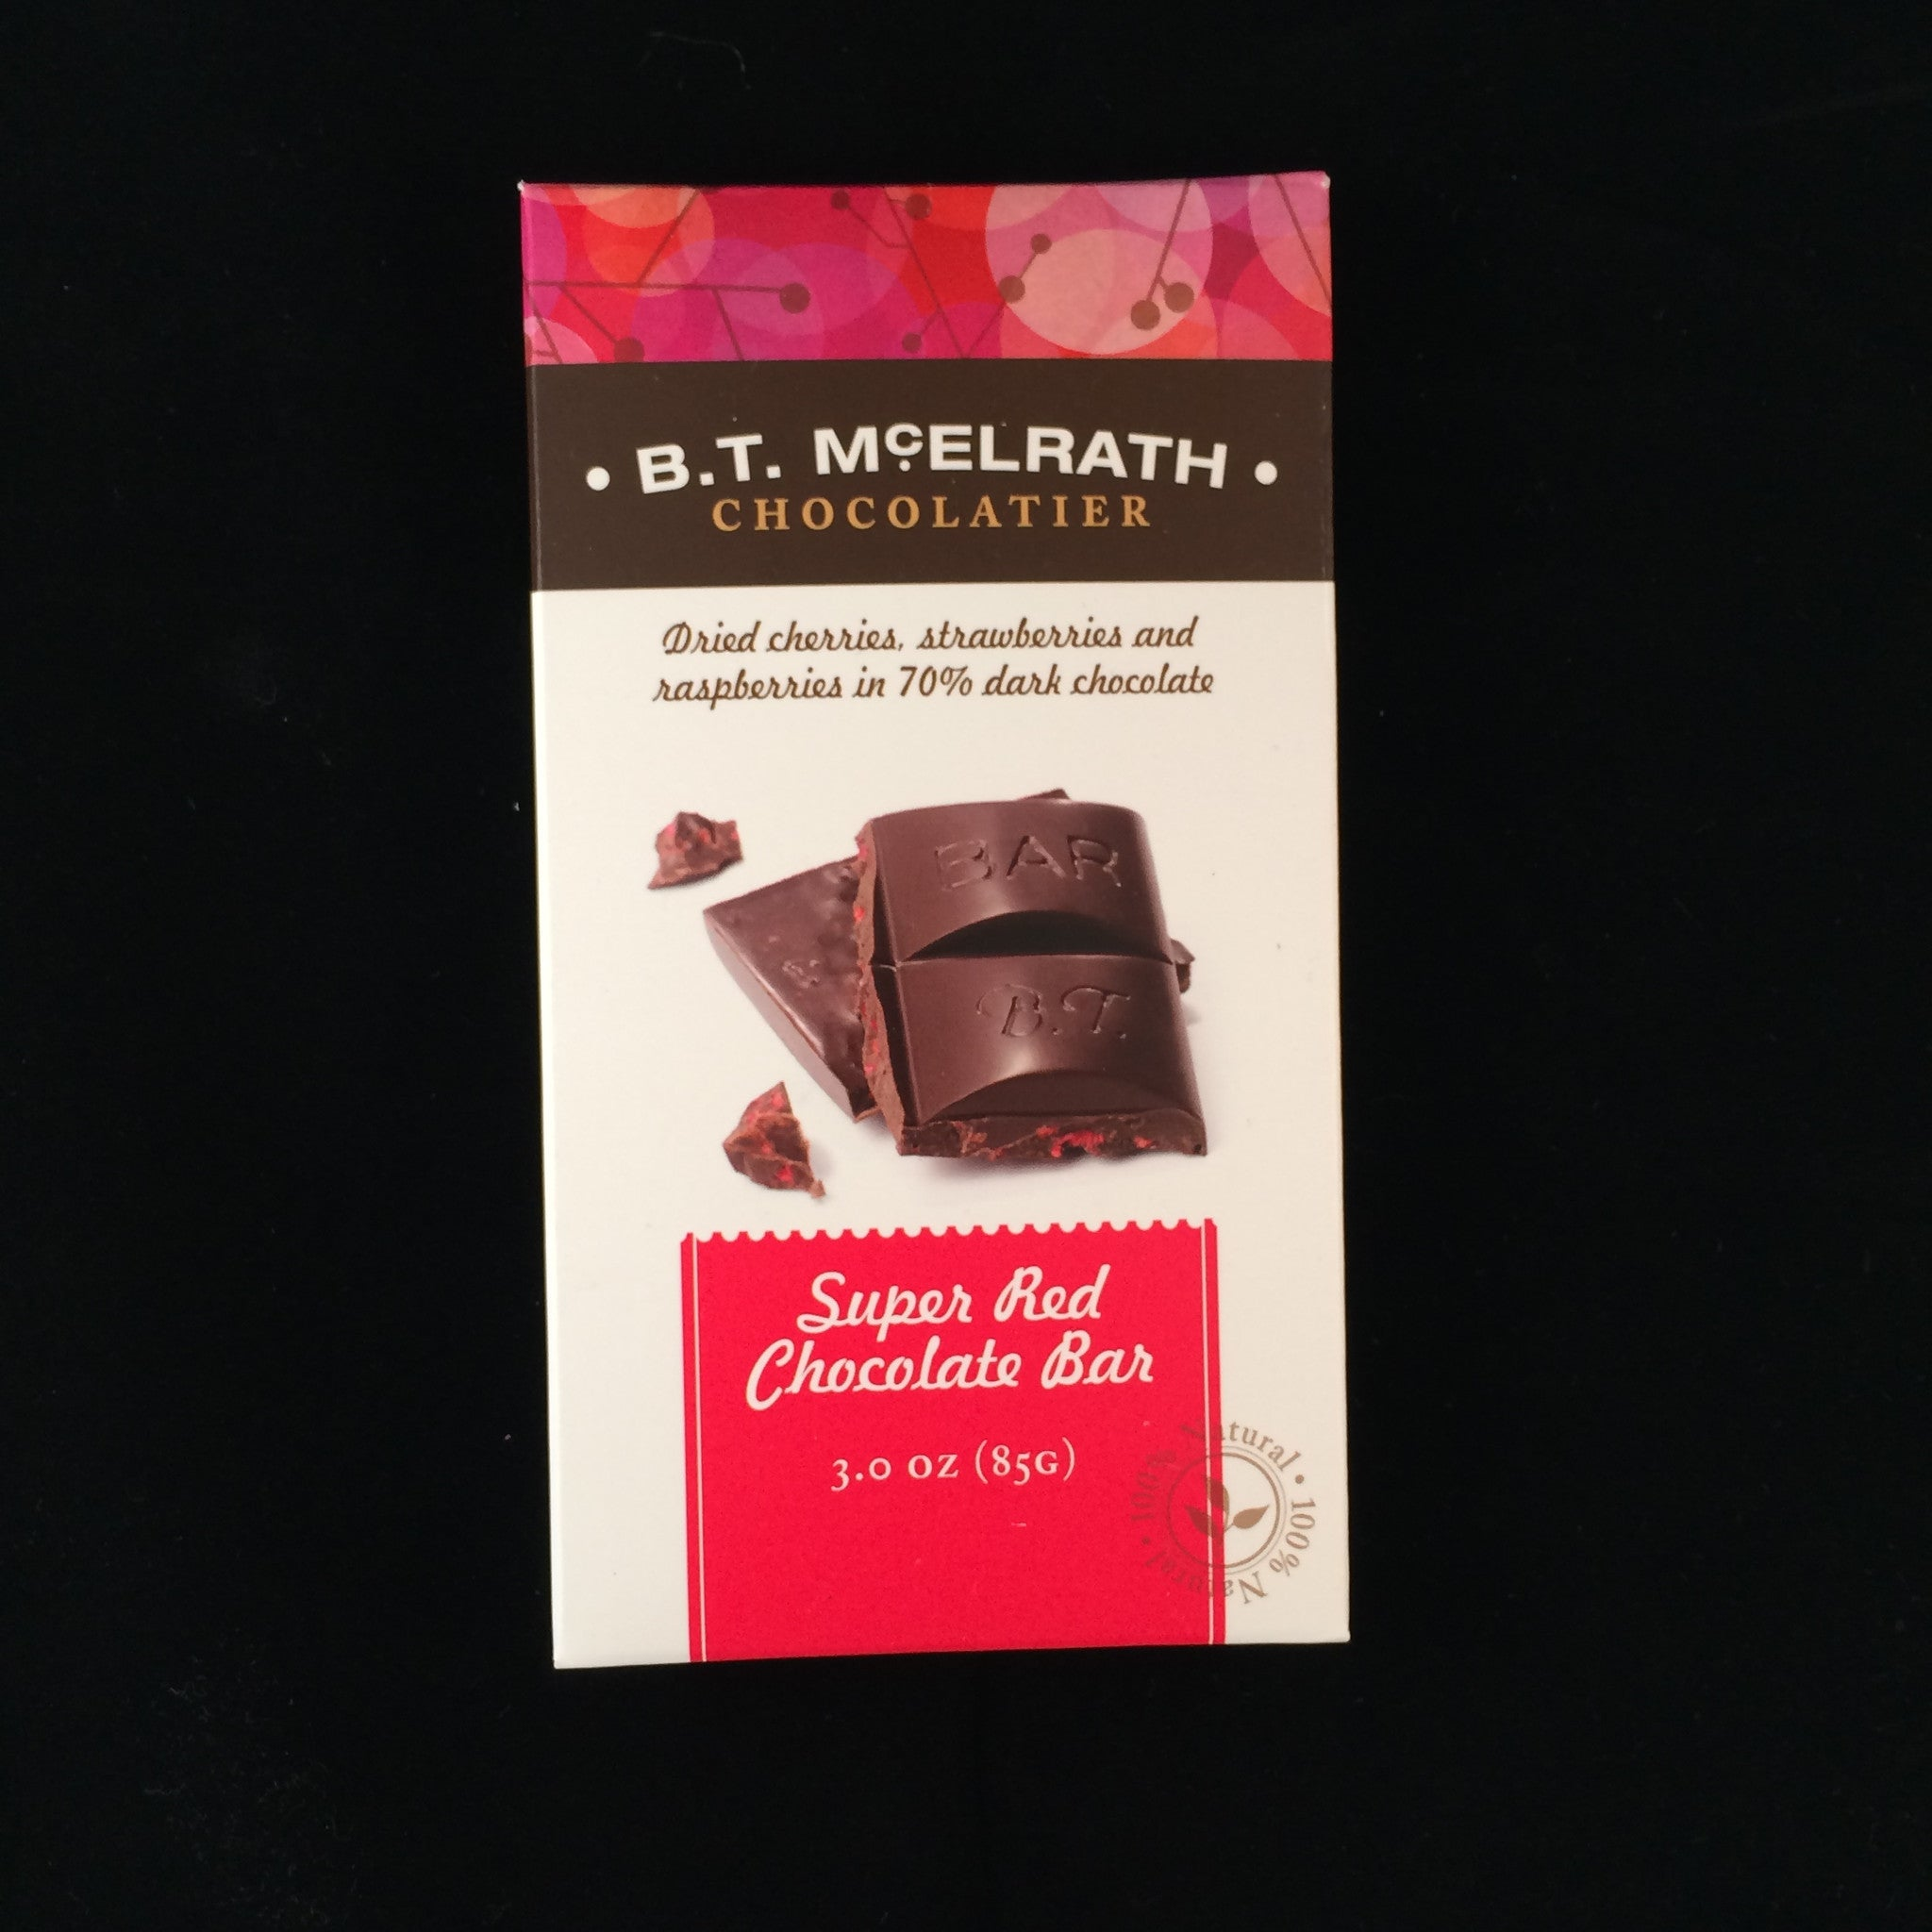 B.T. McElrath Super Red Chocolate Bar